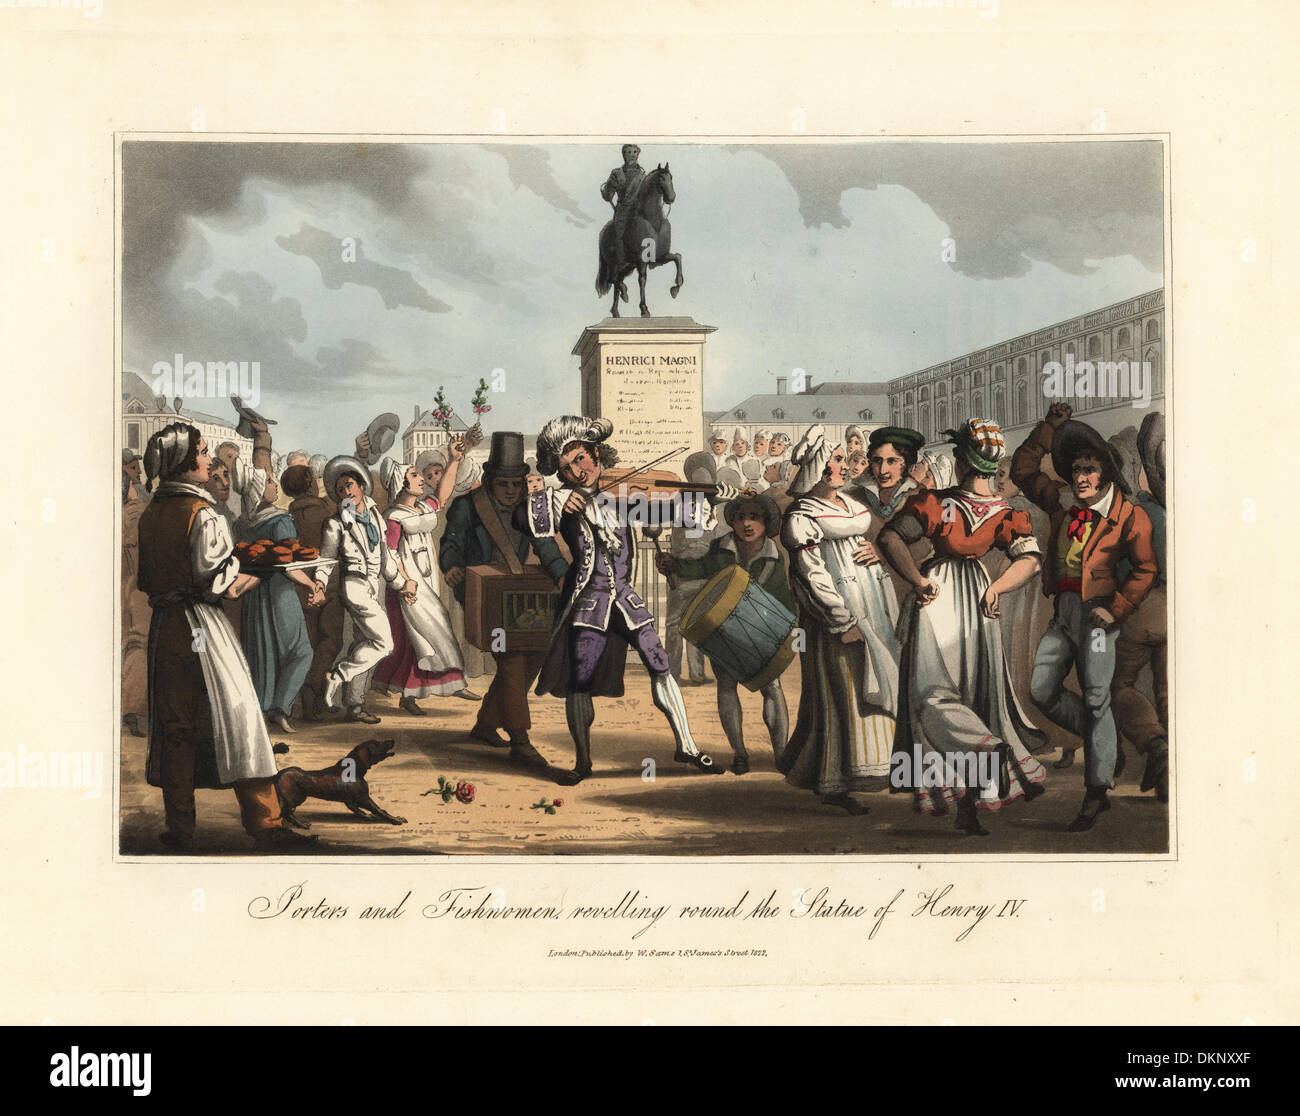 Market porters and fishwomen dancing around a statue of Henri IV. - Stock Image